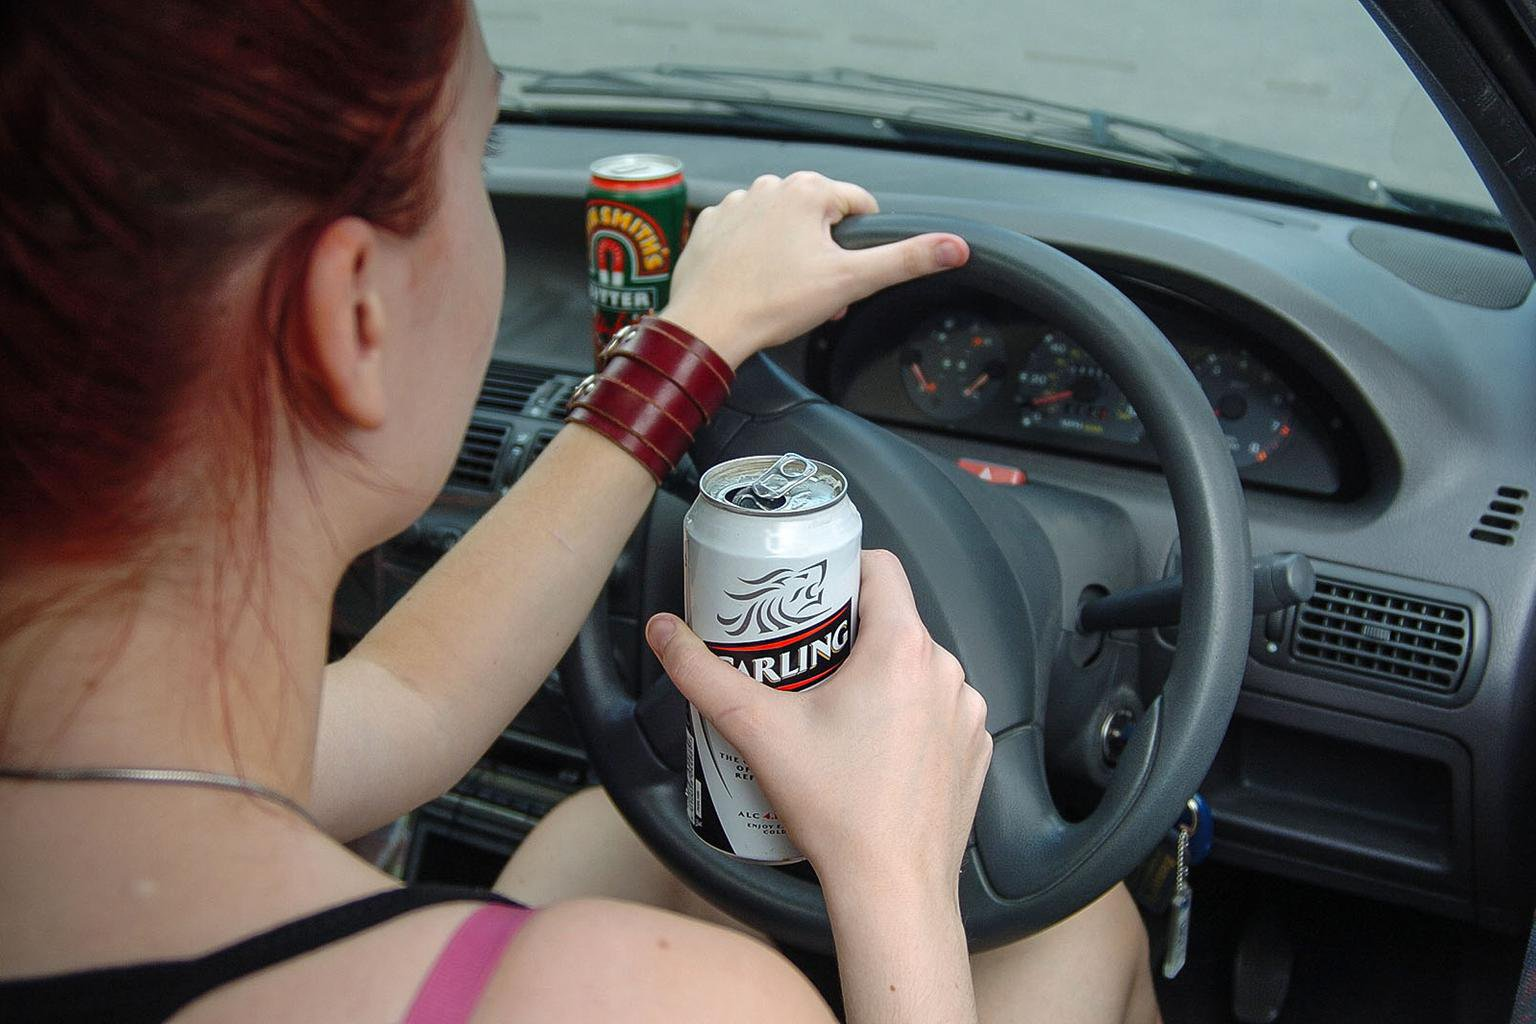 UK could cut drink-driving limit